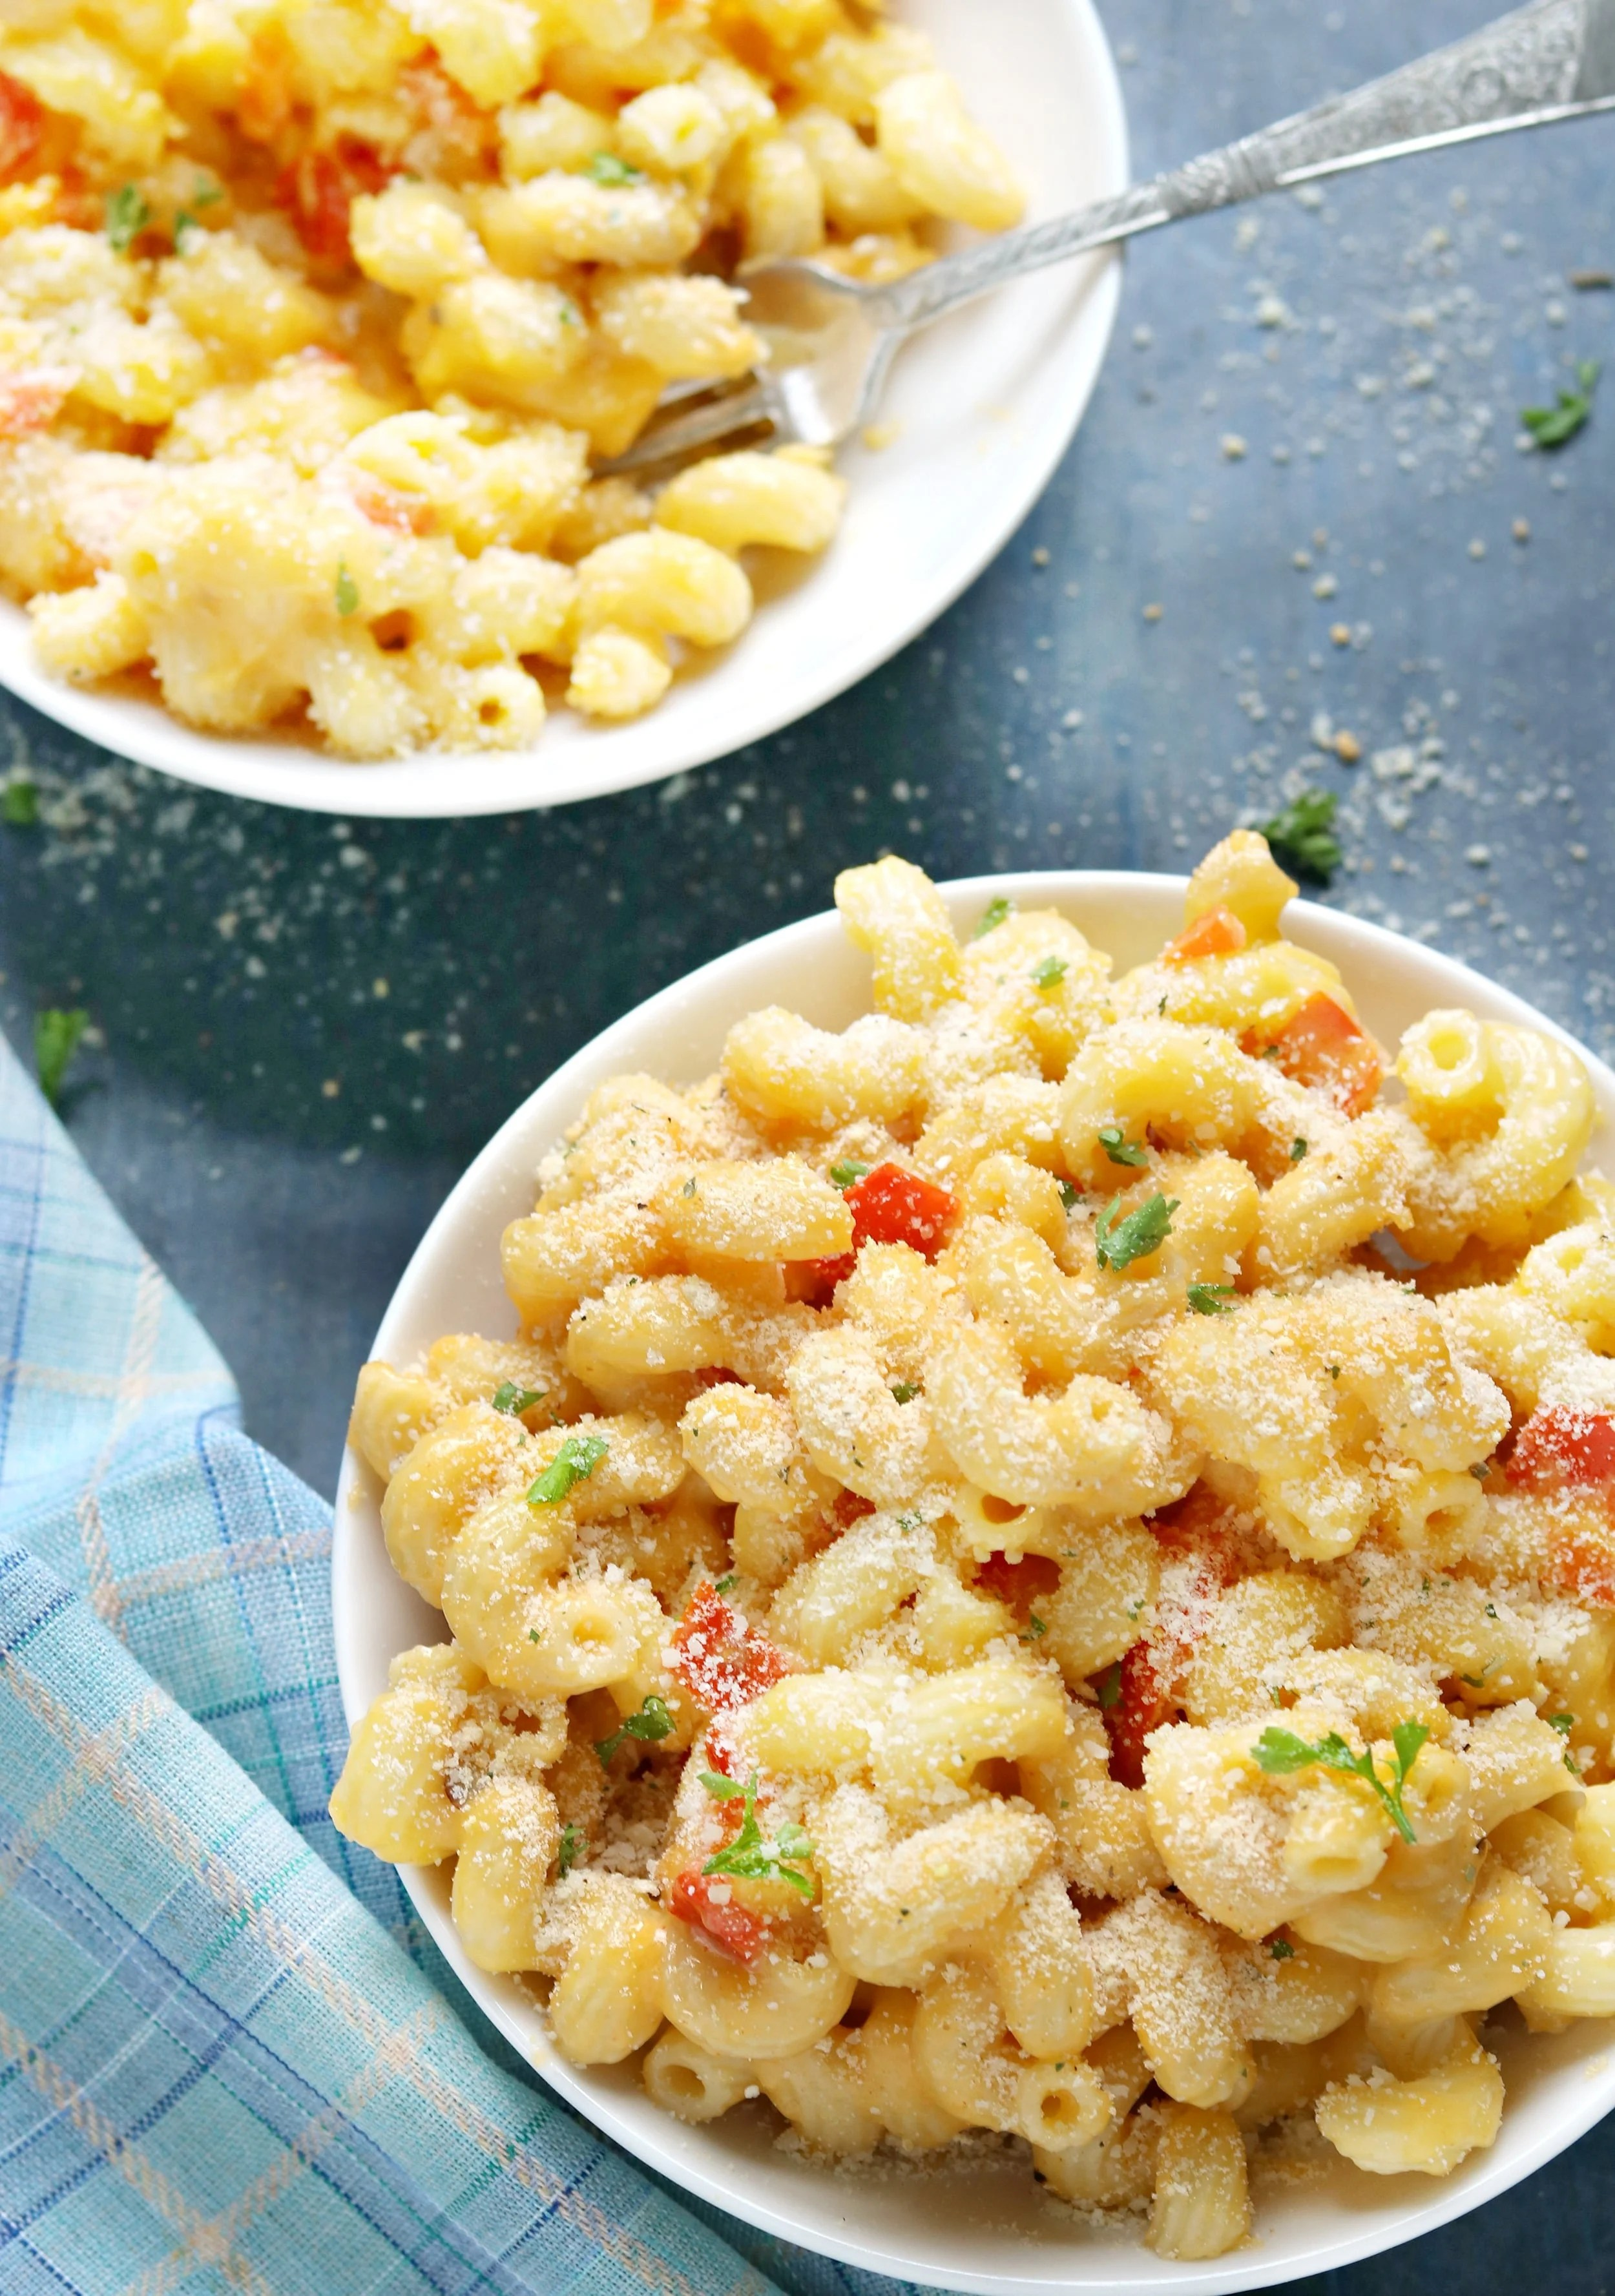 Hard Rock Cafe Twisted Macaroni & Cheese is cavatappi pasta tossed in a slightly spicy cheese sauce with roasted red peppers and topped with Parmesan parsley breadcrumbs. A copycat version of a favorite restaurant dish! | www.persnicketyplates.com